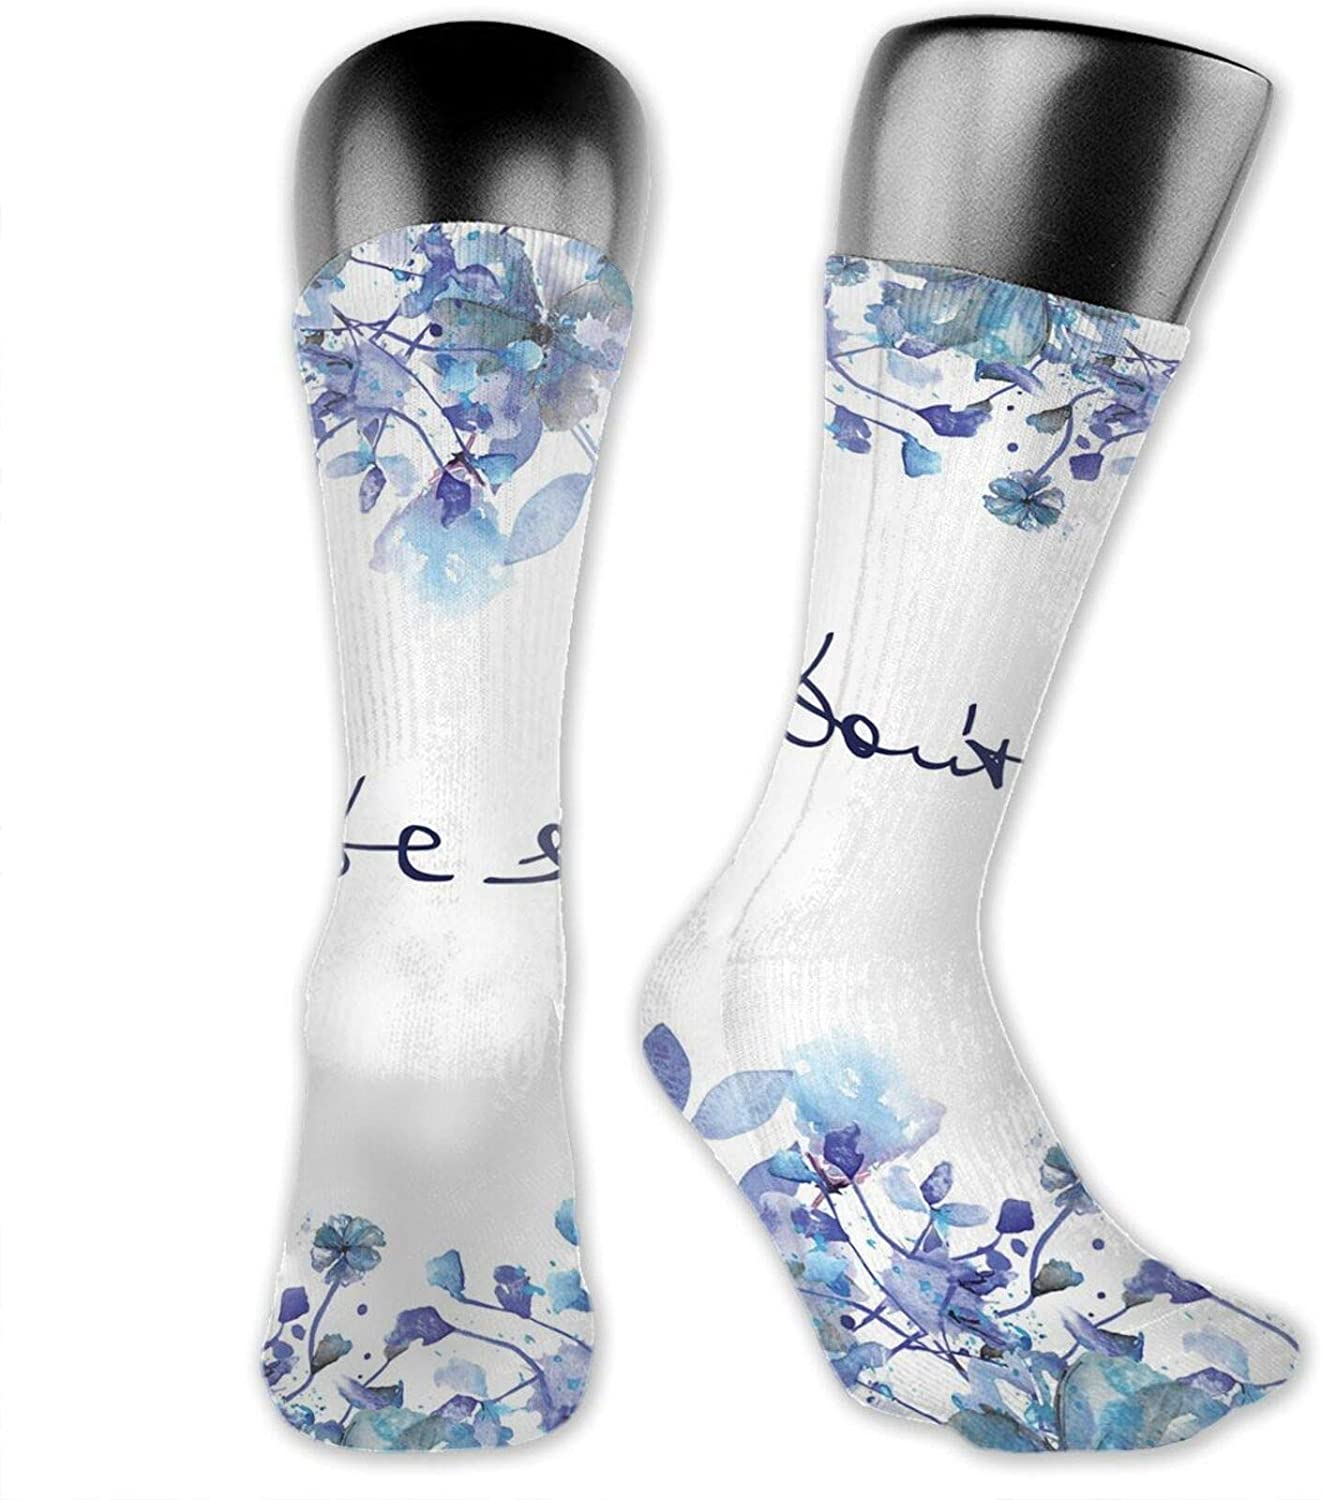 Compression Socks For Unisex Best Department San Jose Mall store Running Circulation for Athlet